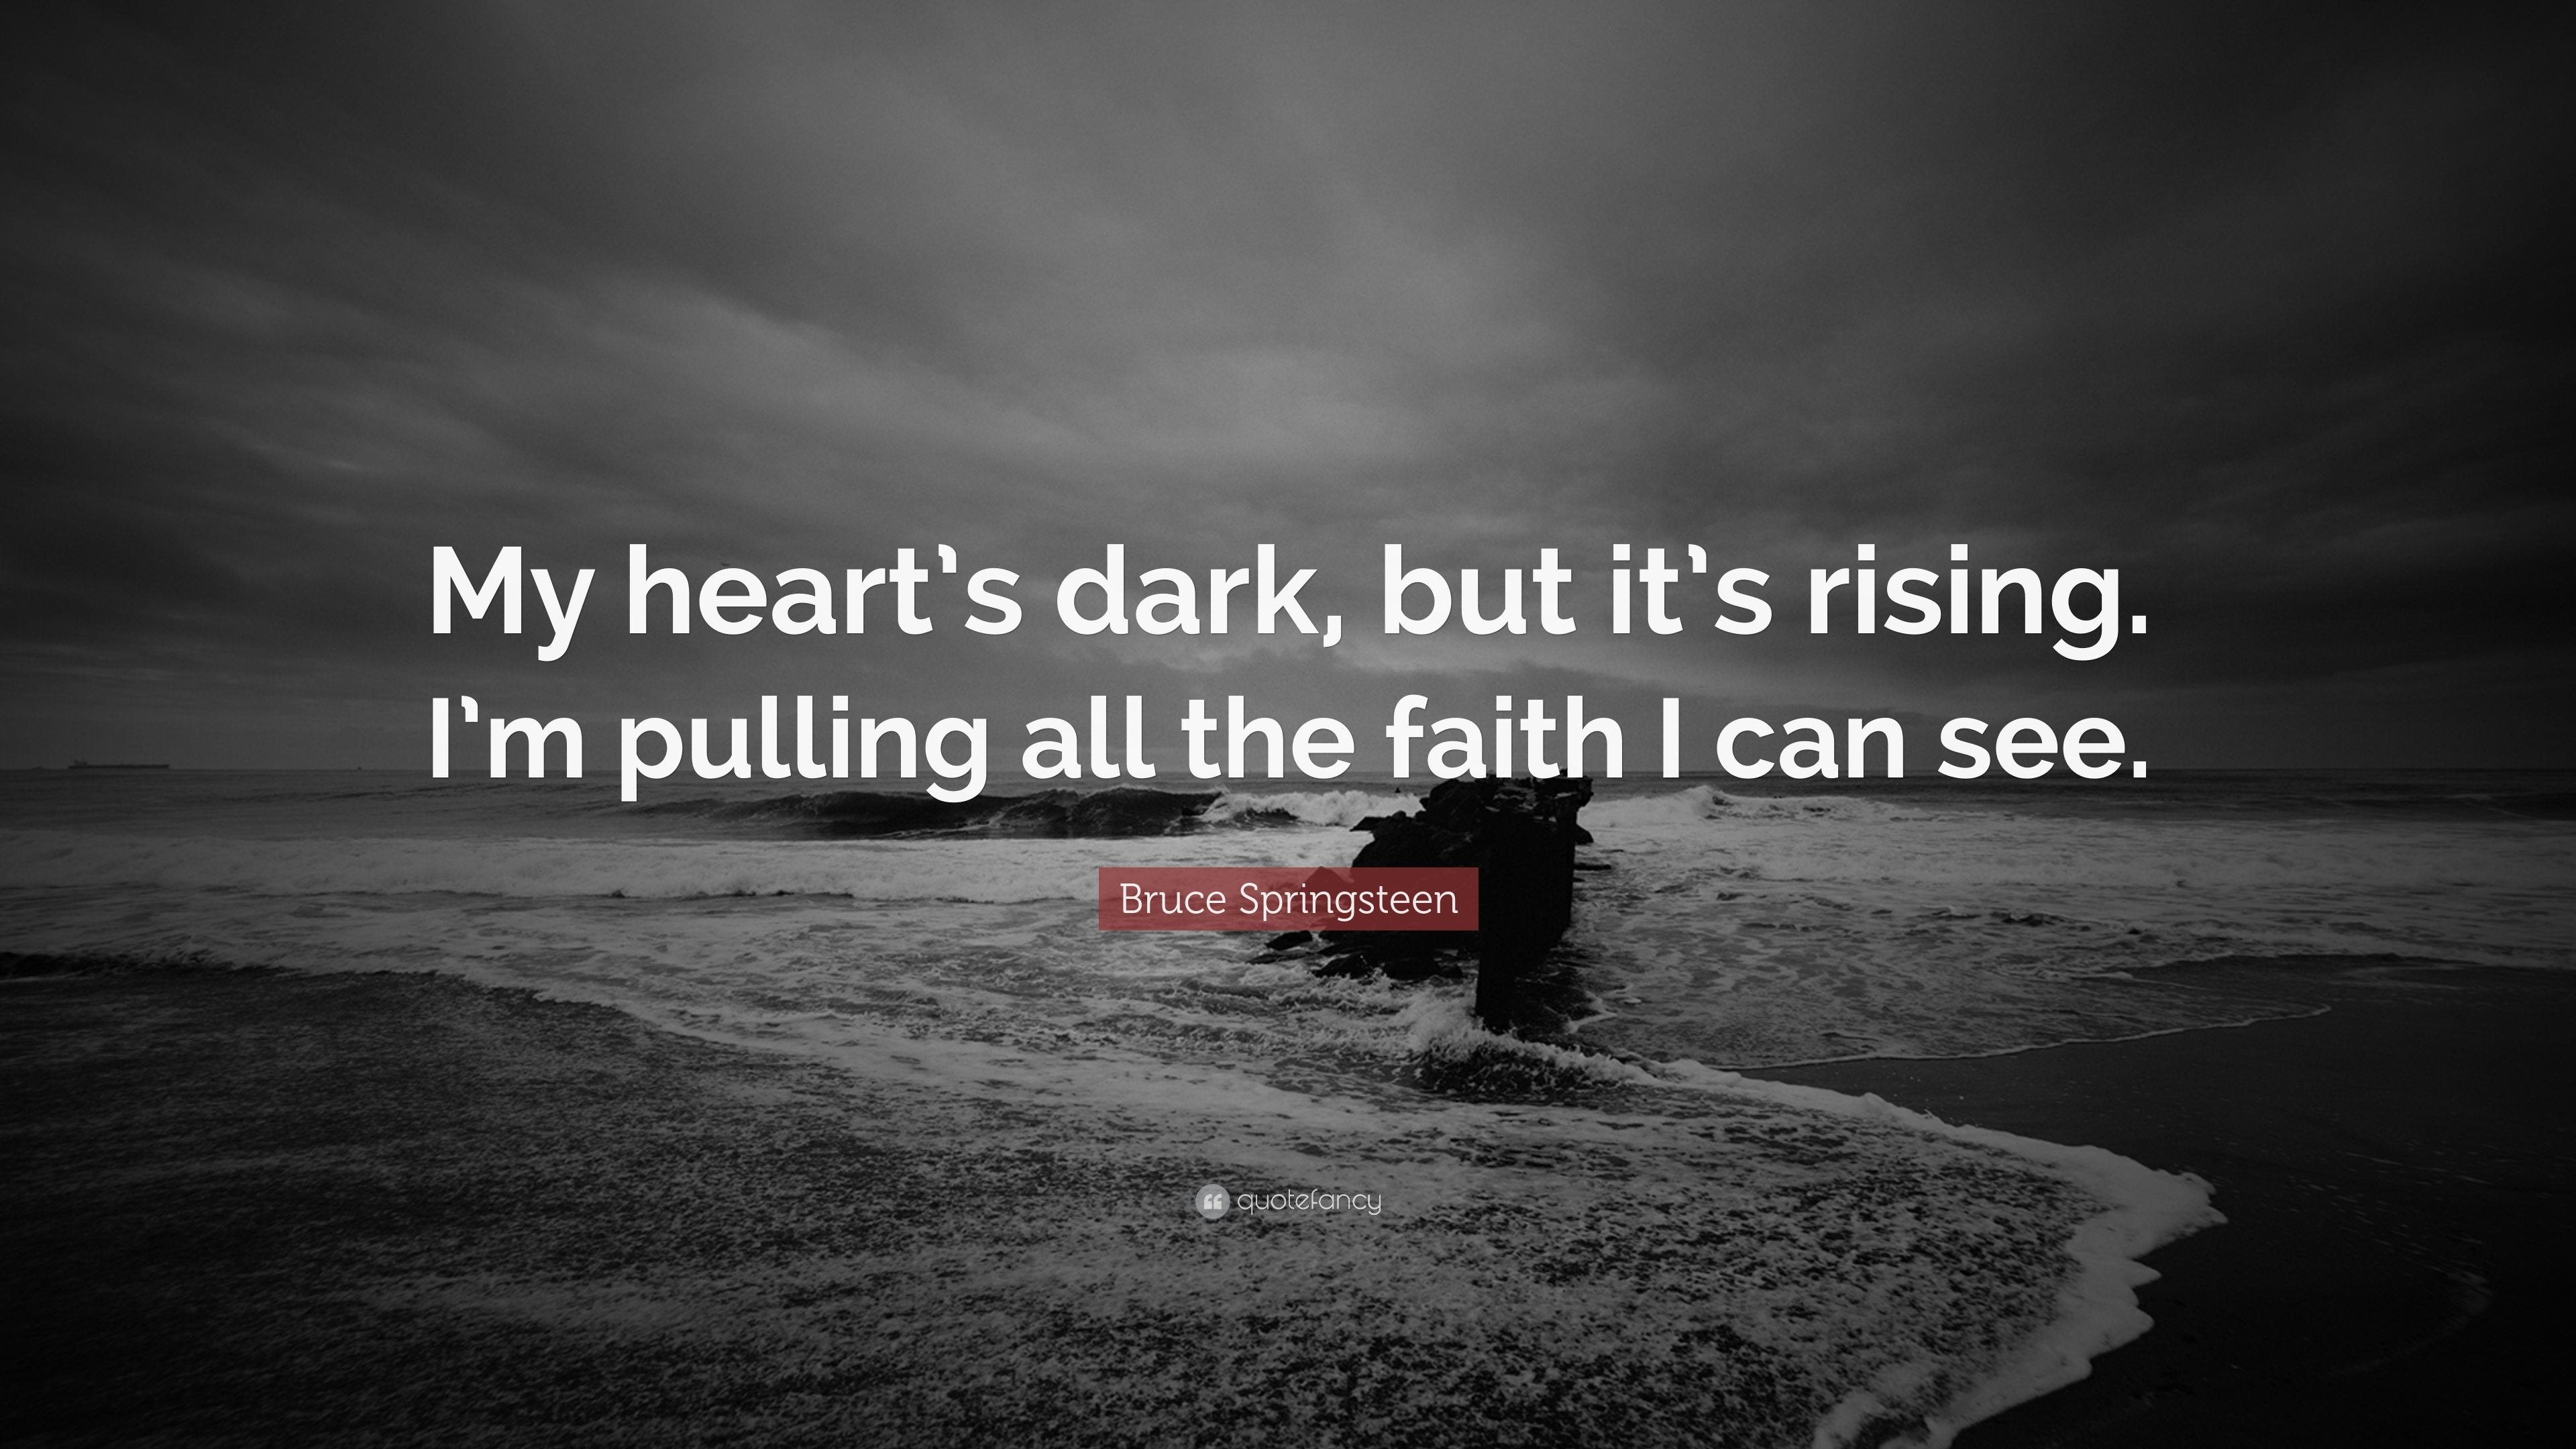 Bruce Springsteen Quotes (230 wallpapers) - Quotefancy